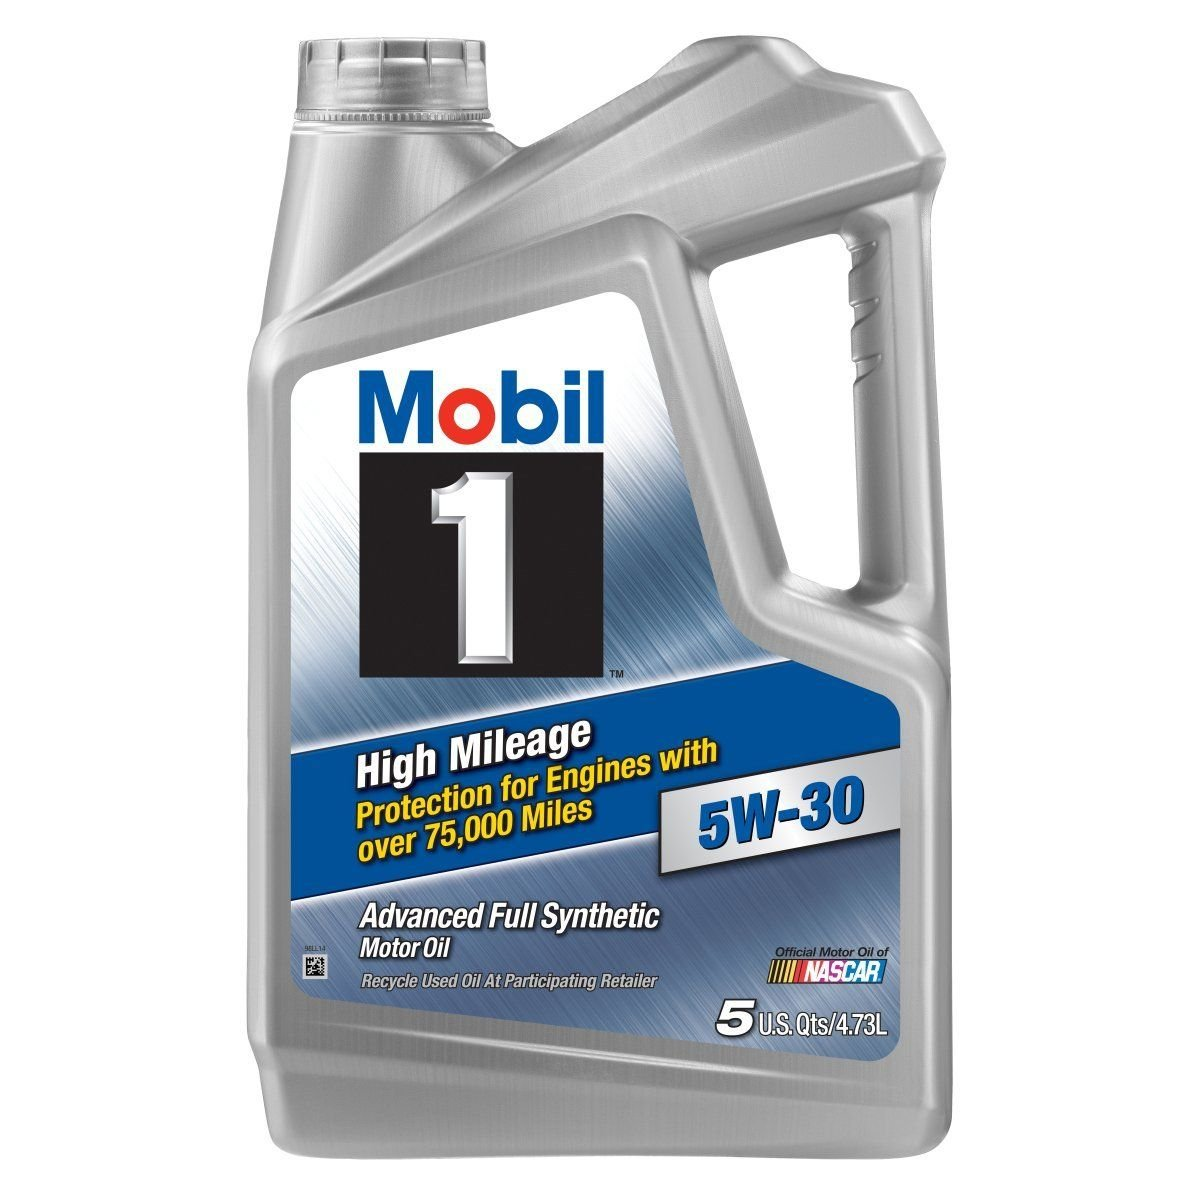 Mobil 1 (120769-3PK) High Mileage 5W-30 Motor Oil, 5 Quart, Pack of 3 by Mobil 1